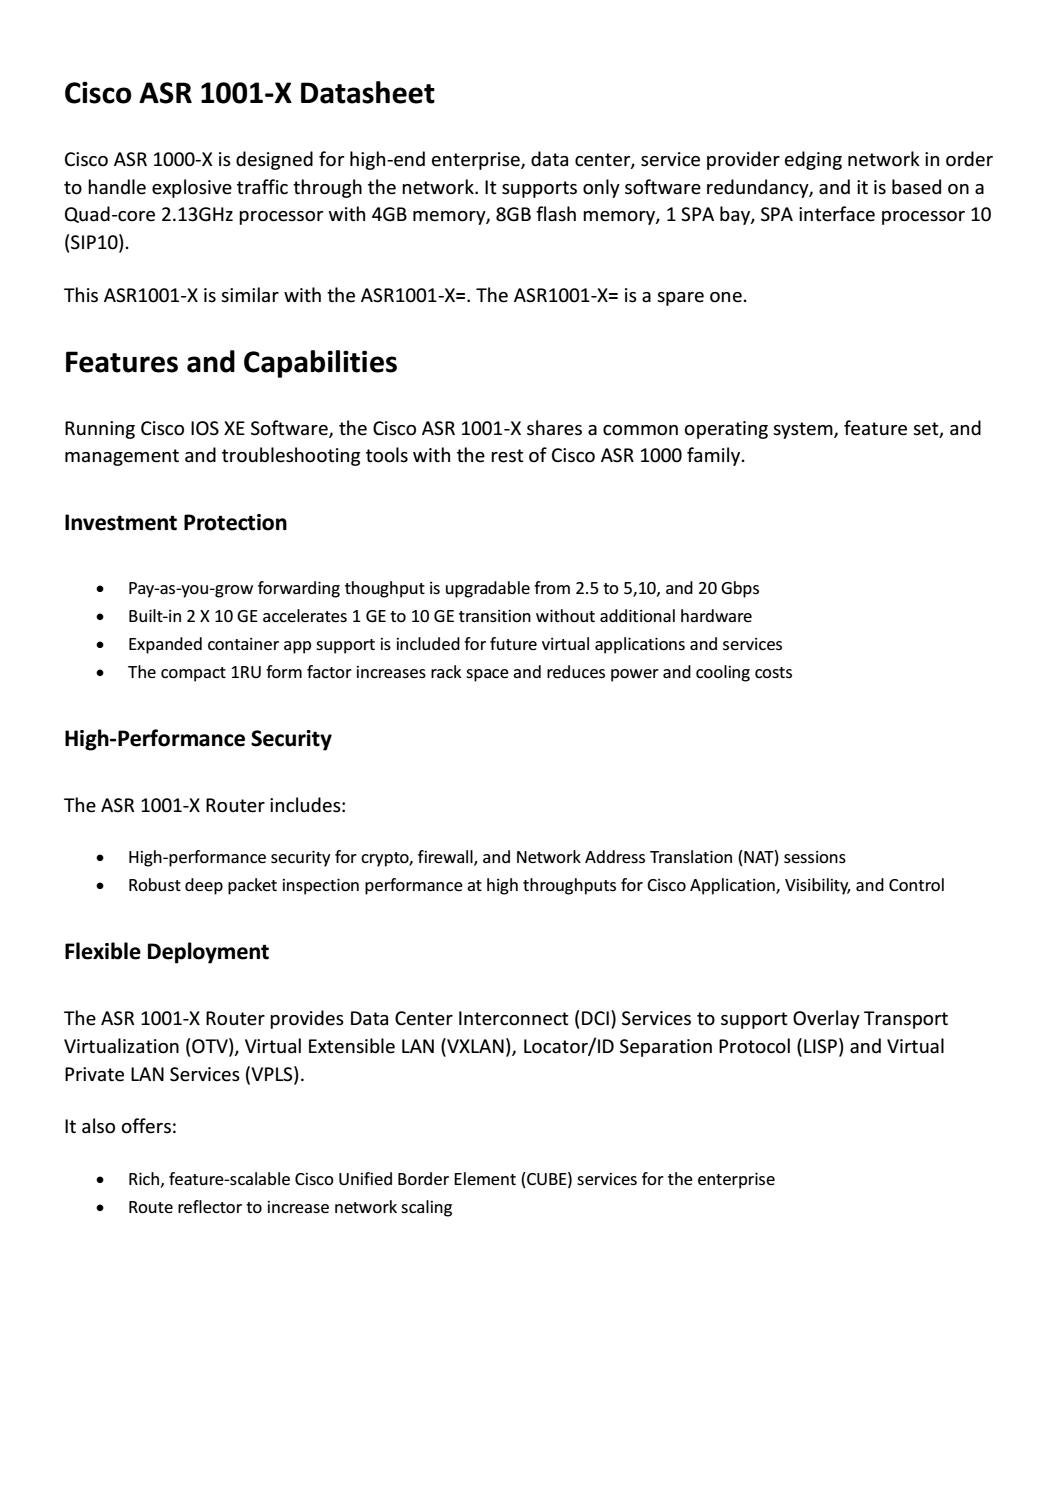 Cisco asr 1001 x datasheet by Genevicost - issuu